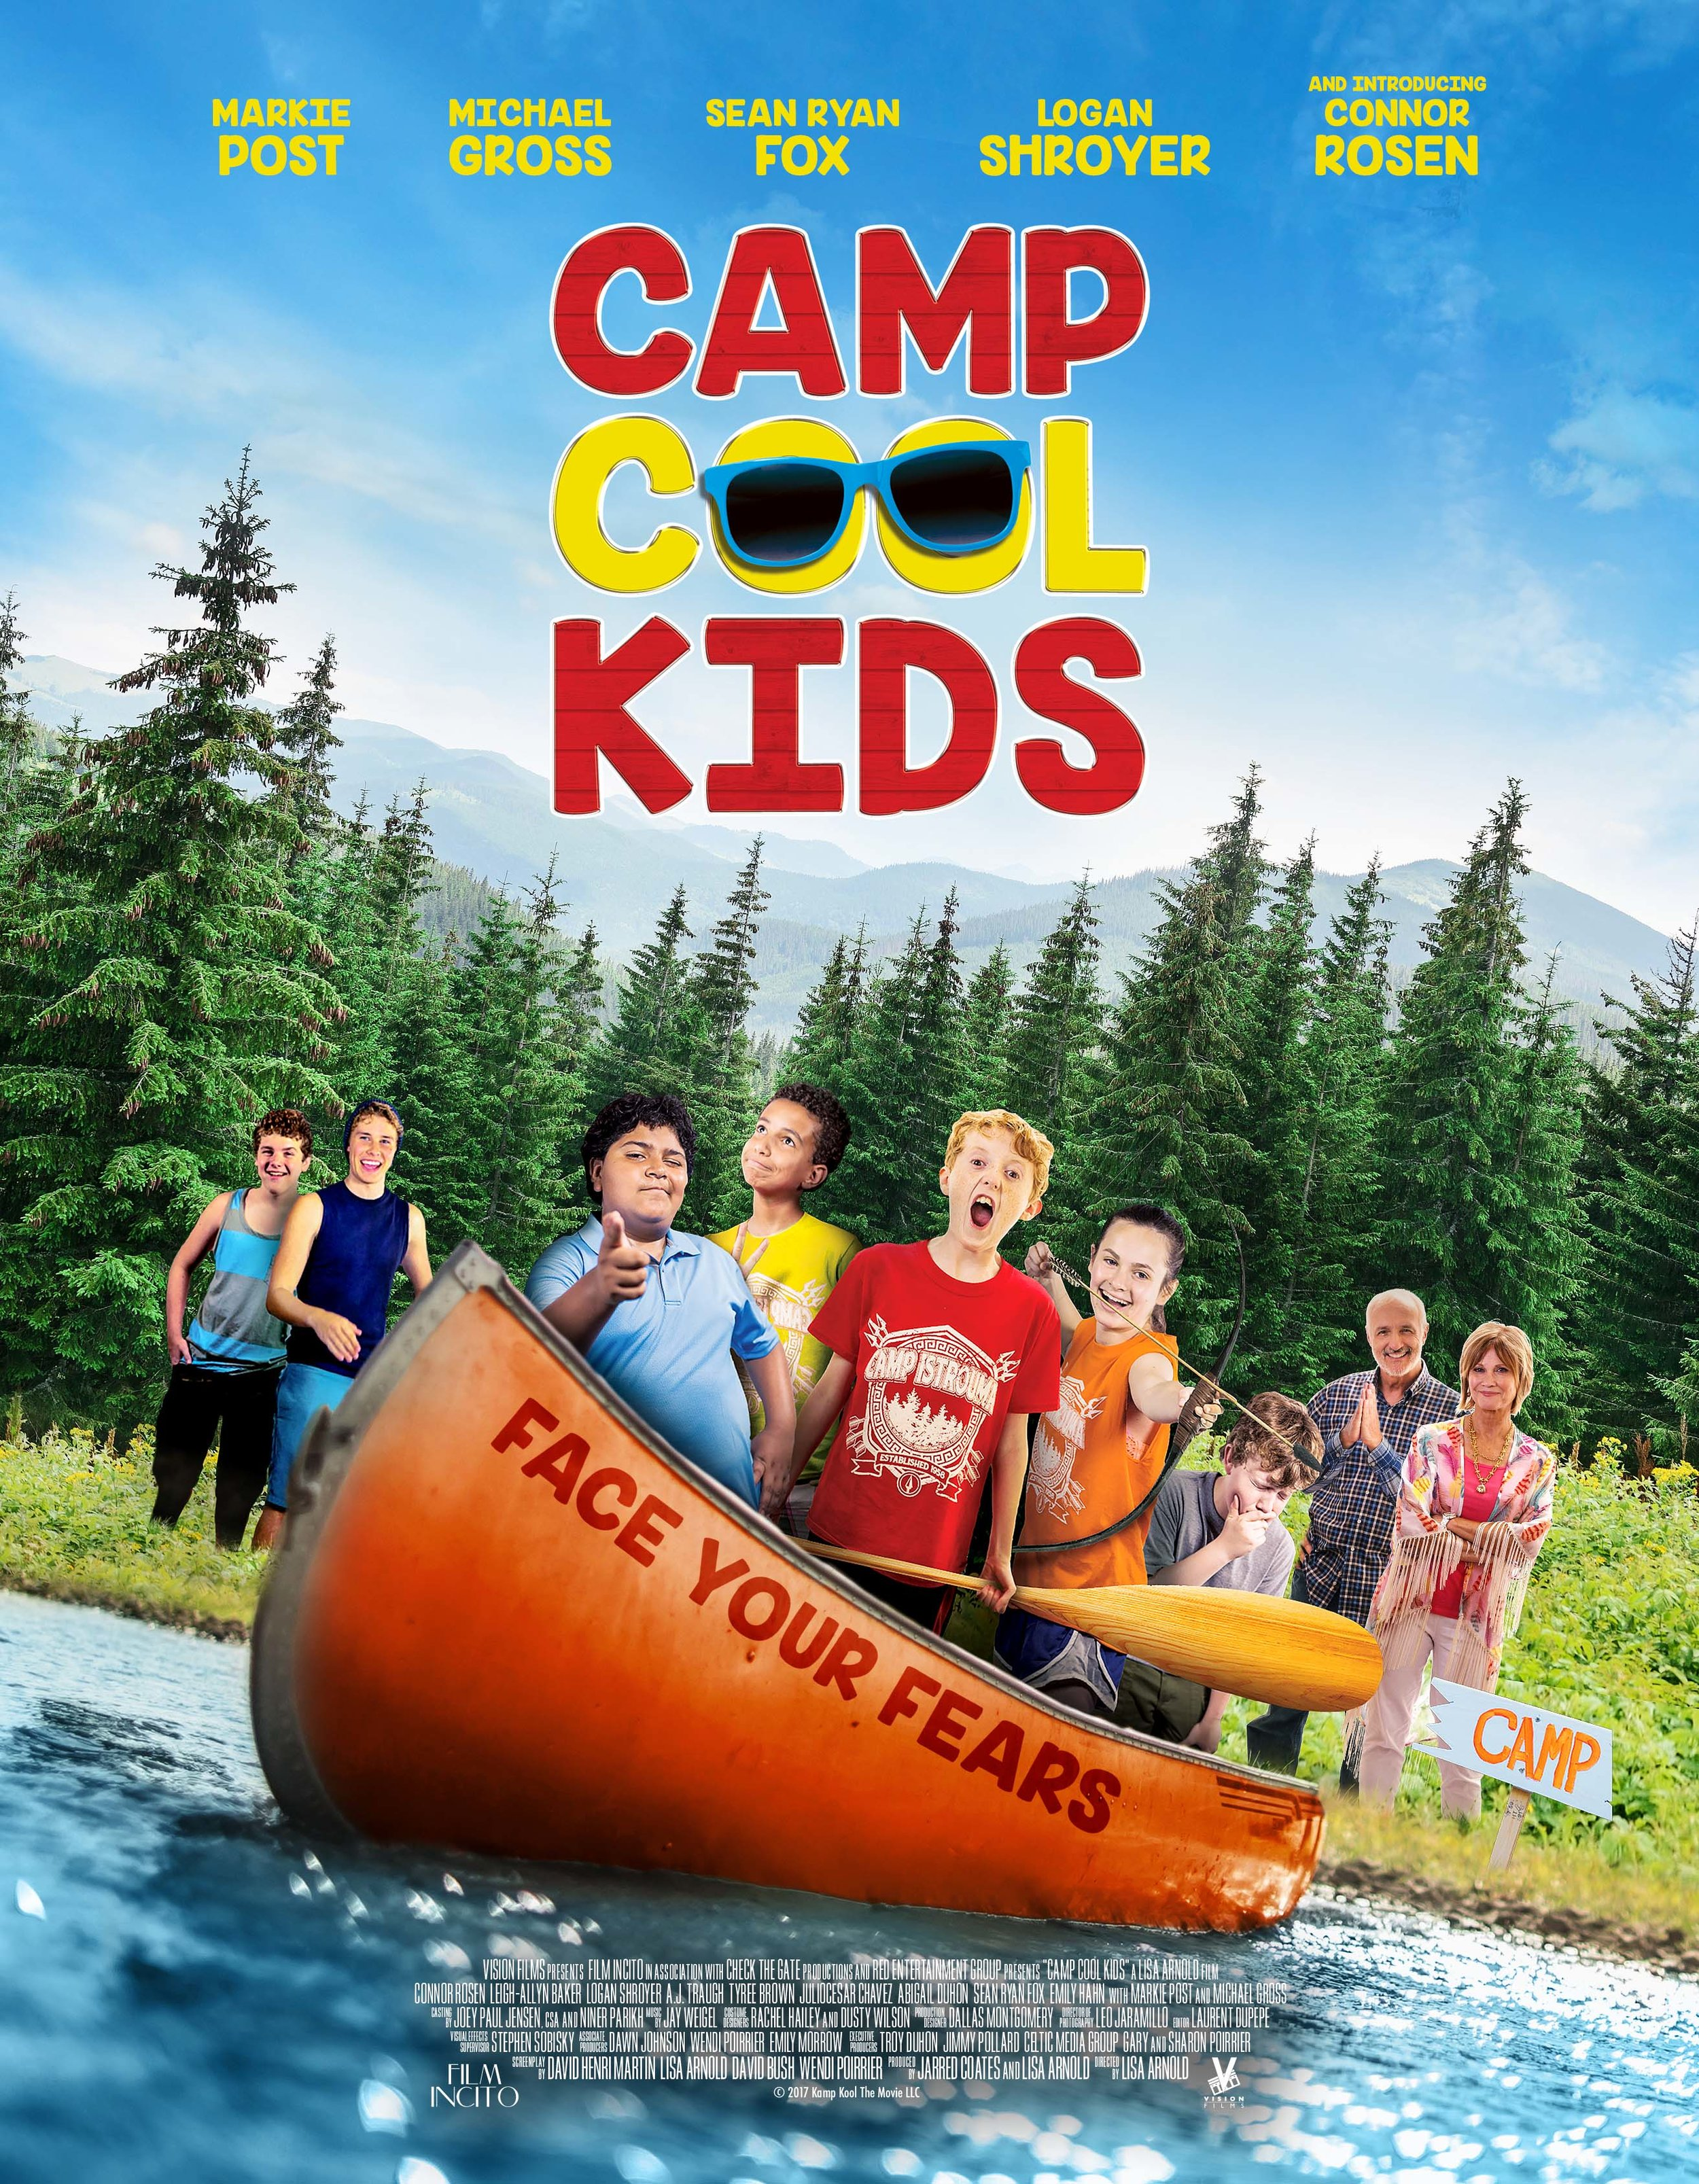 Watch on VOD and then buy your DVD below!    -  Please write great reviews of the film where you watch and buy your version of Camp Cool Kids!